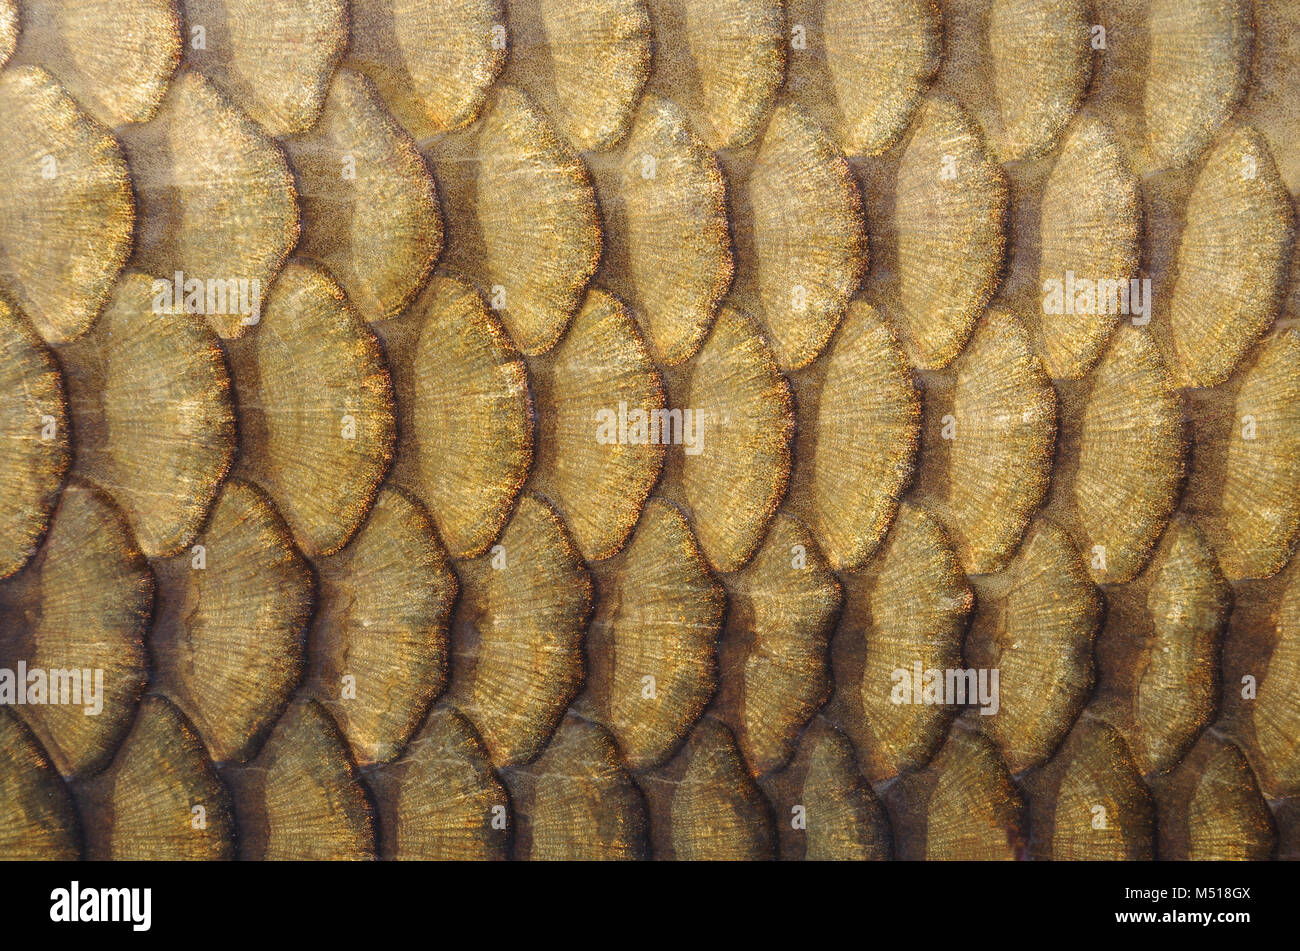 Fish scales. Gold carp scales close-up - Stock Image